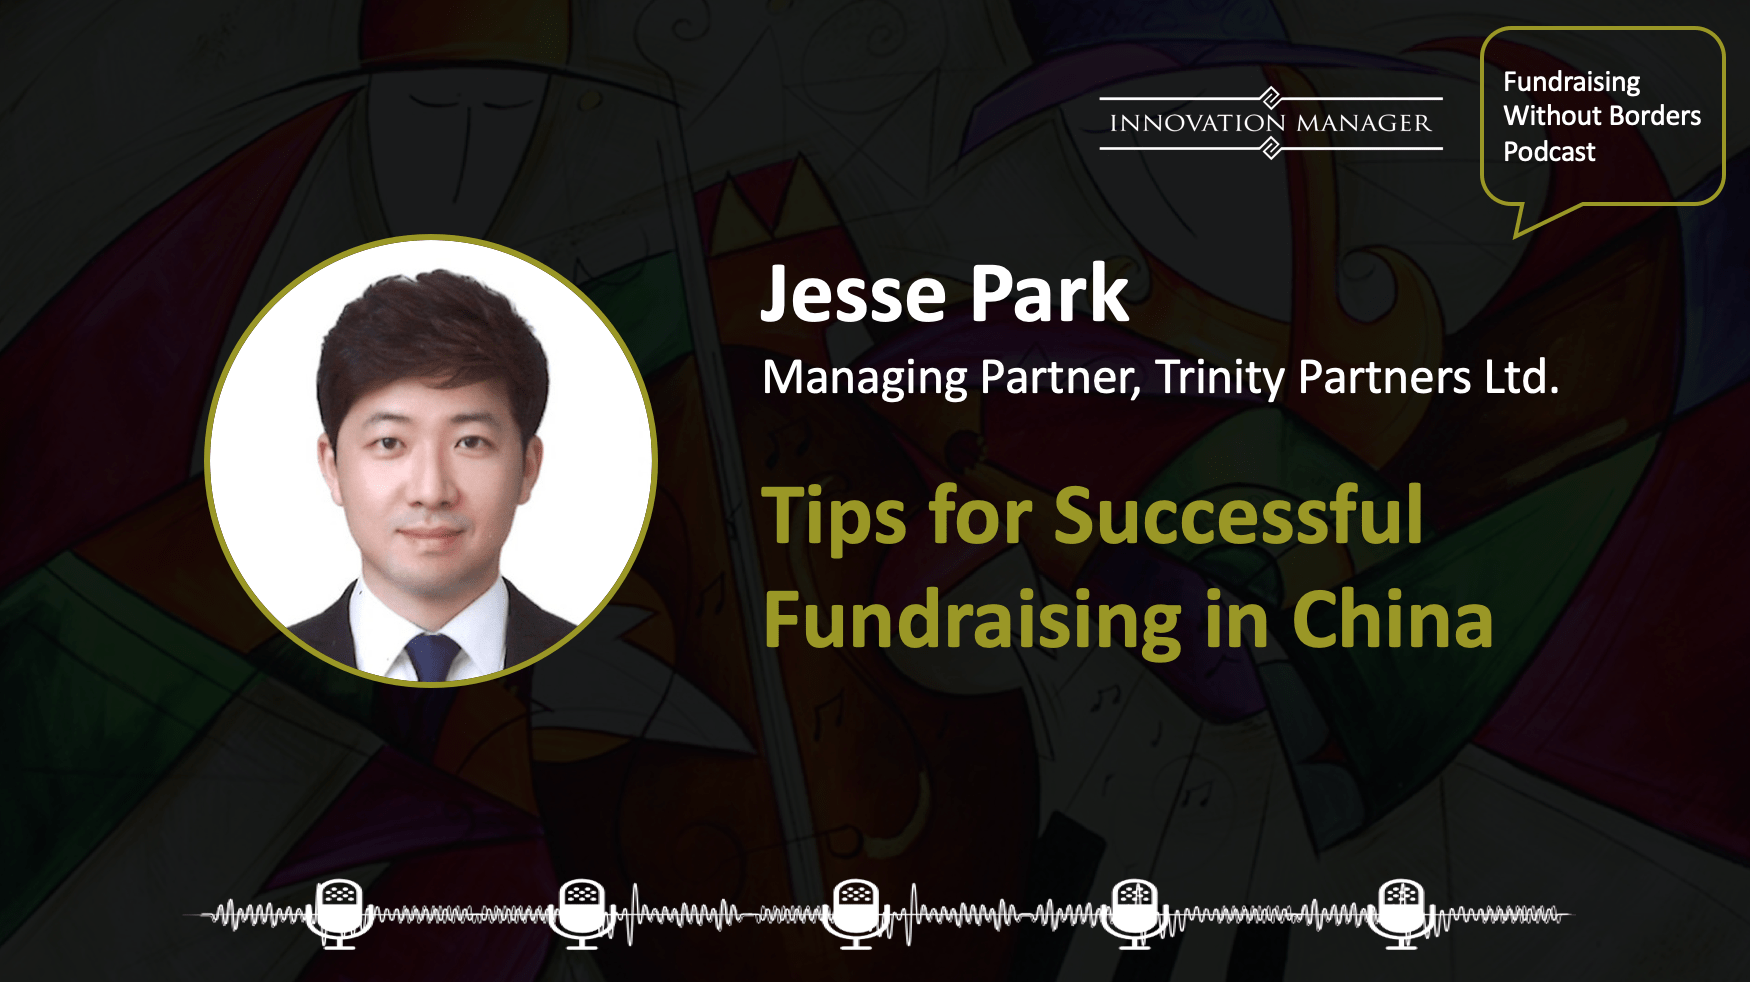 Tips for Successful Fundraising in China